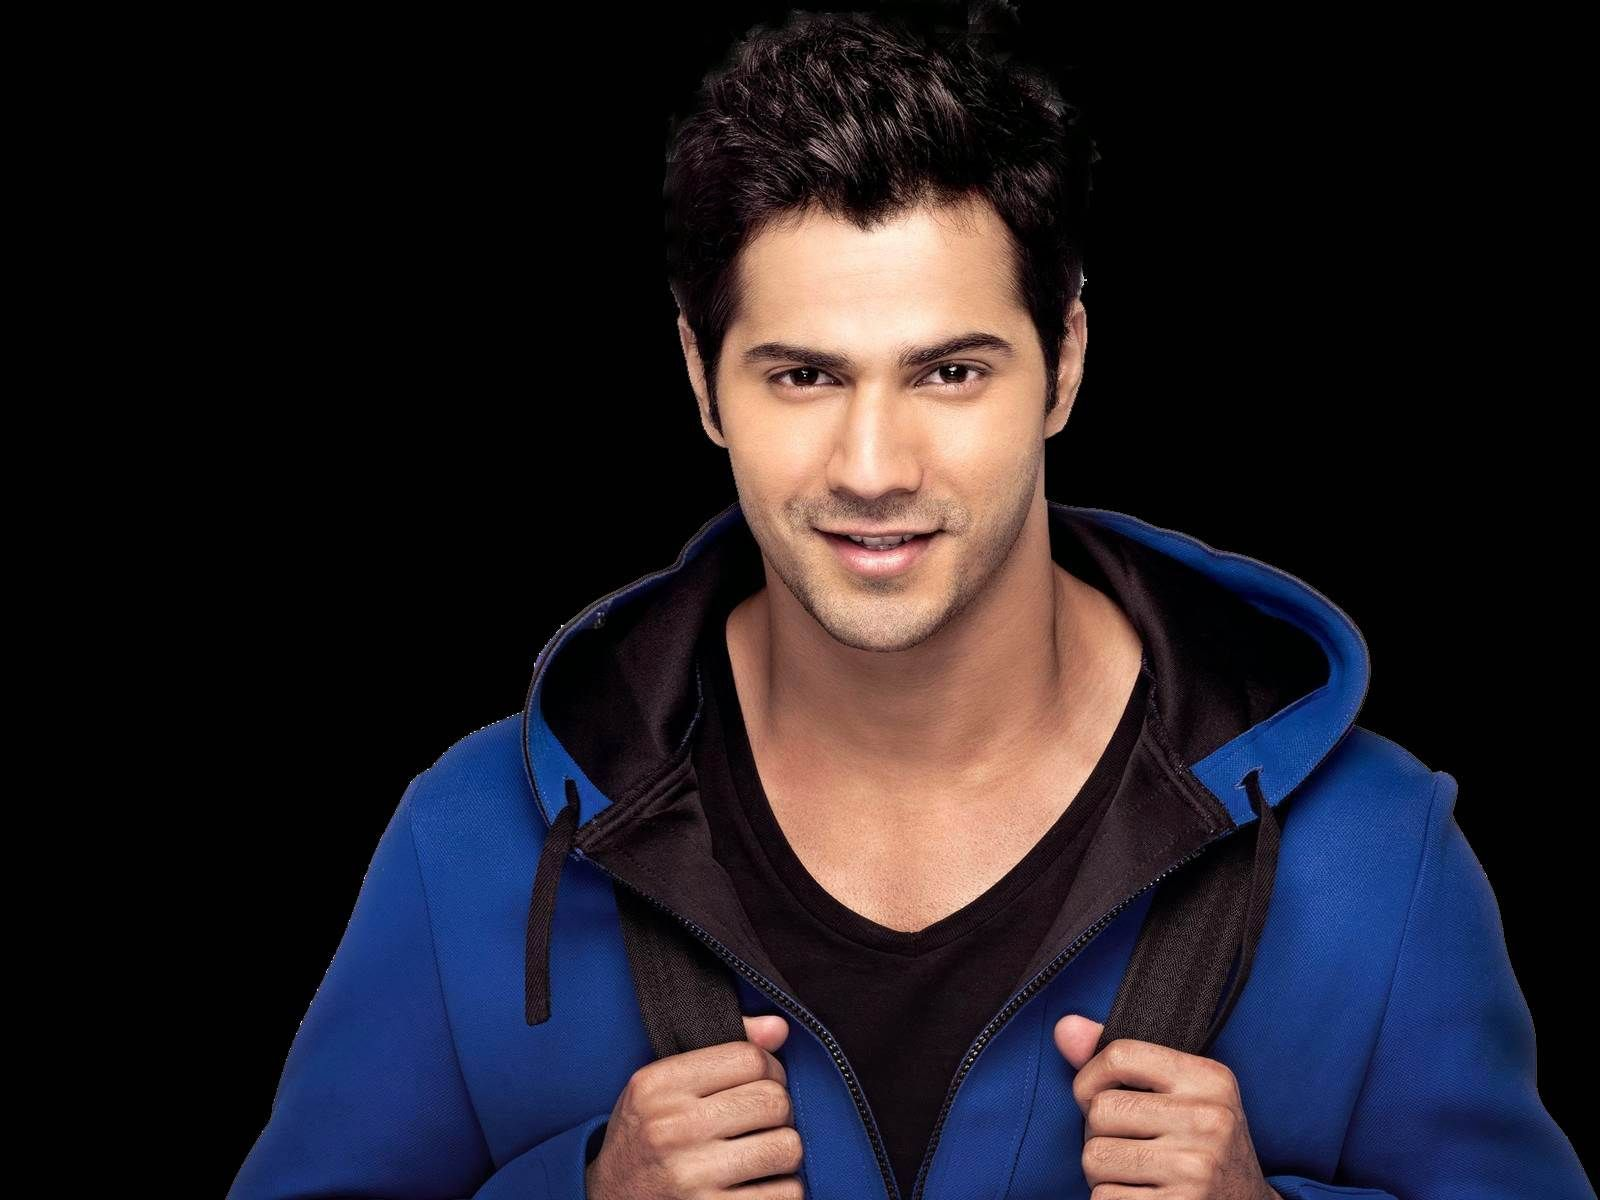 varun dhawan bollywood actors wallpapers download free mrpopat 1600